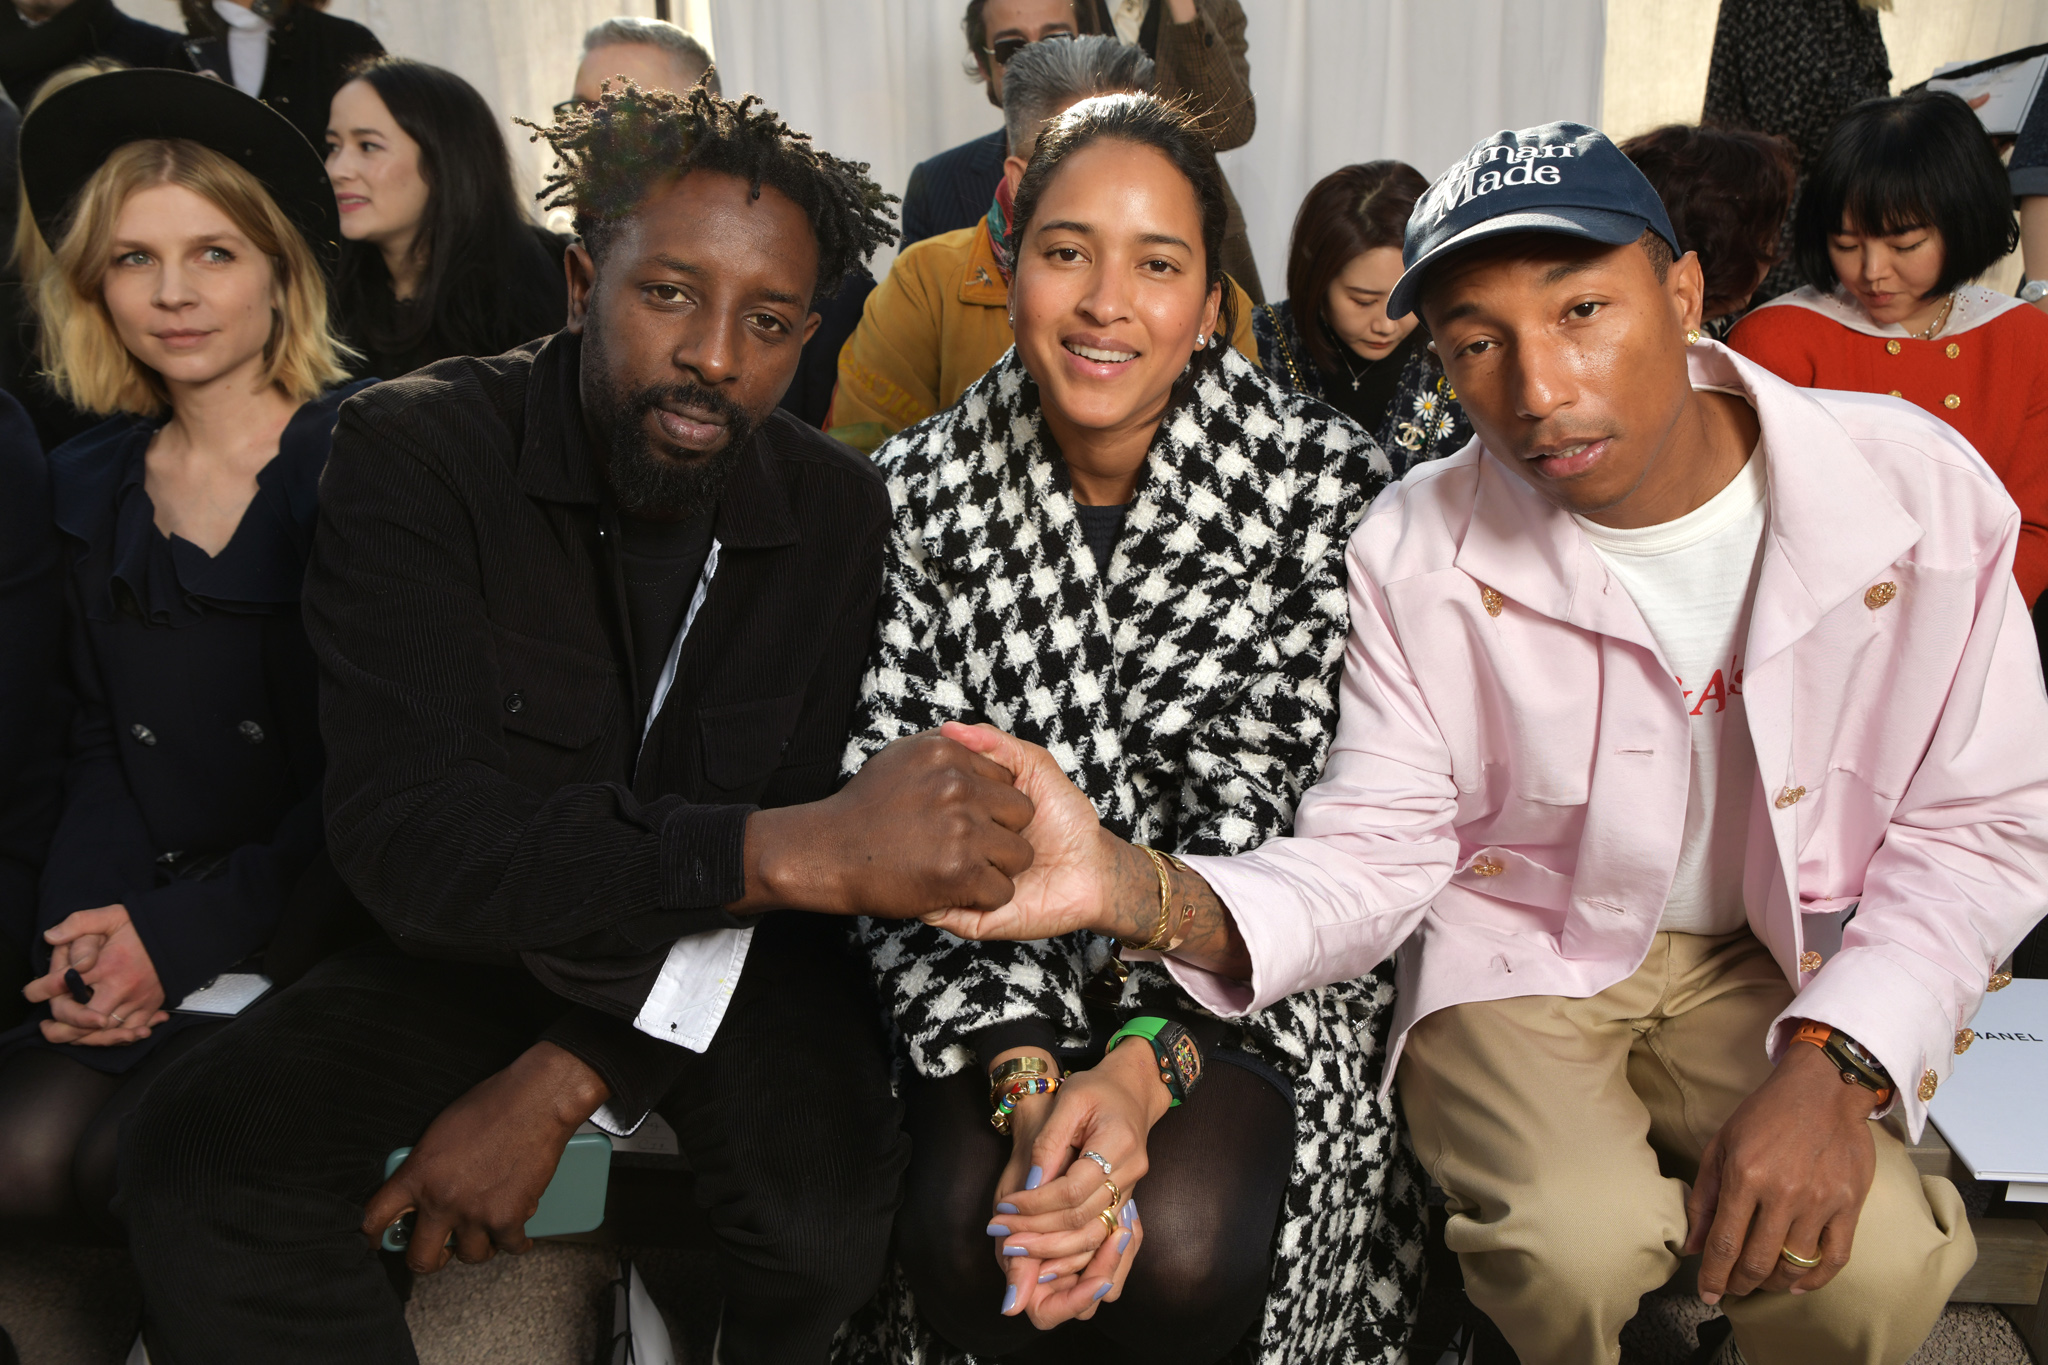 Ladj Ly, Helen Lasichanh and Pharrell Williams